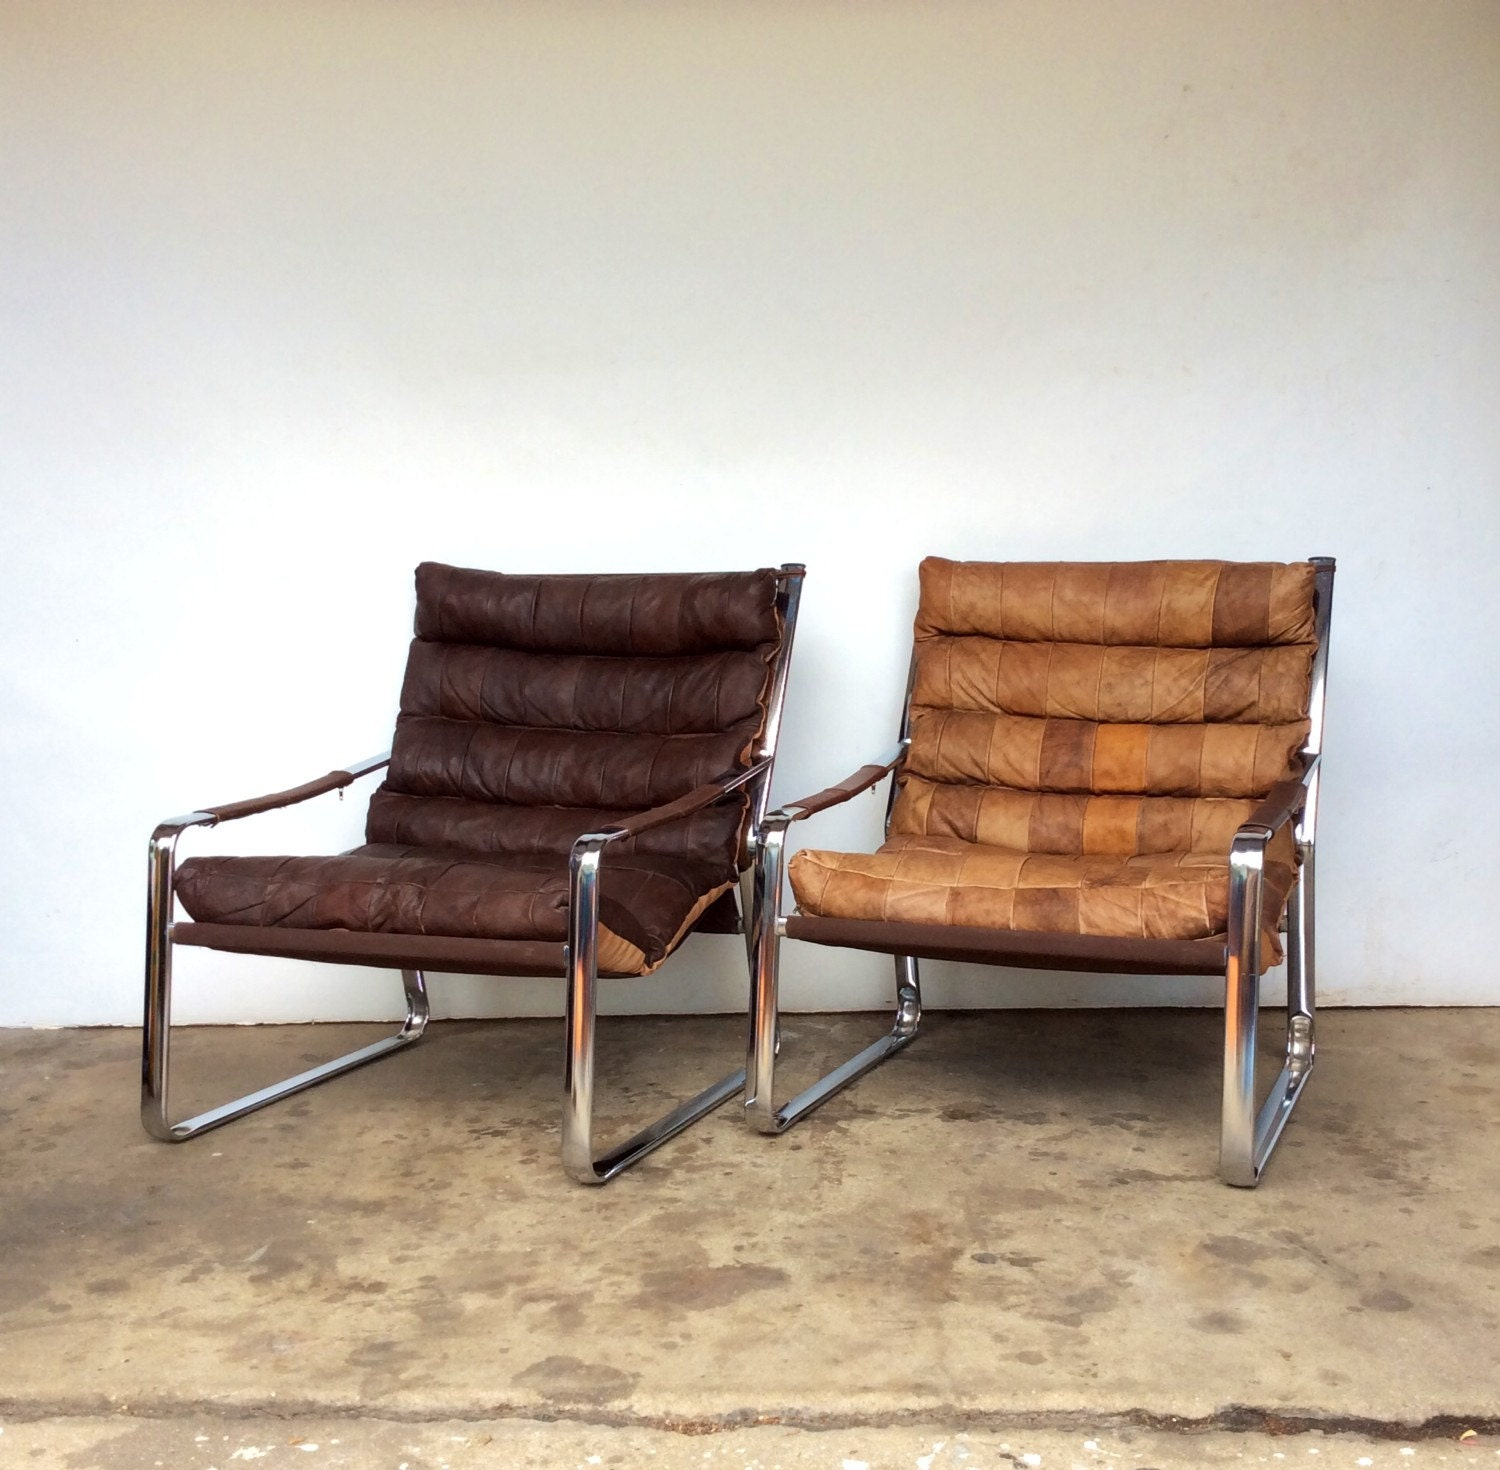 Pair Of Mid Century Modern Leather Sling Chairs Haute Juice